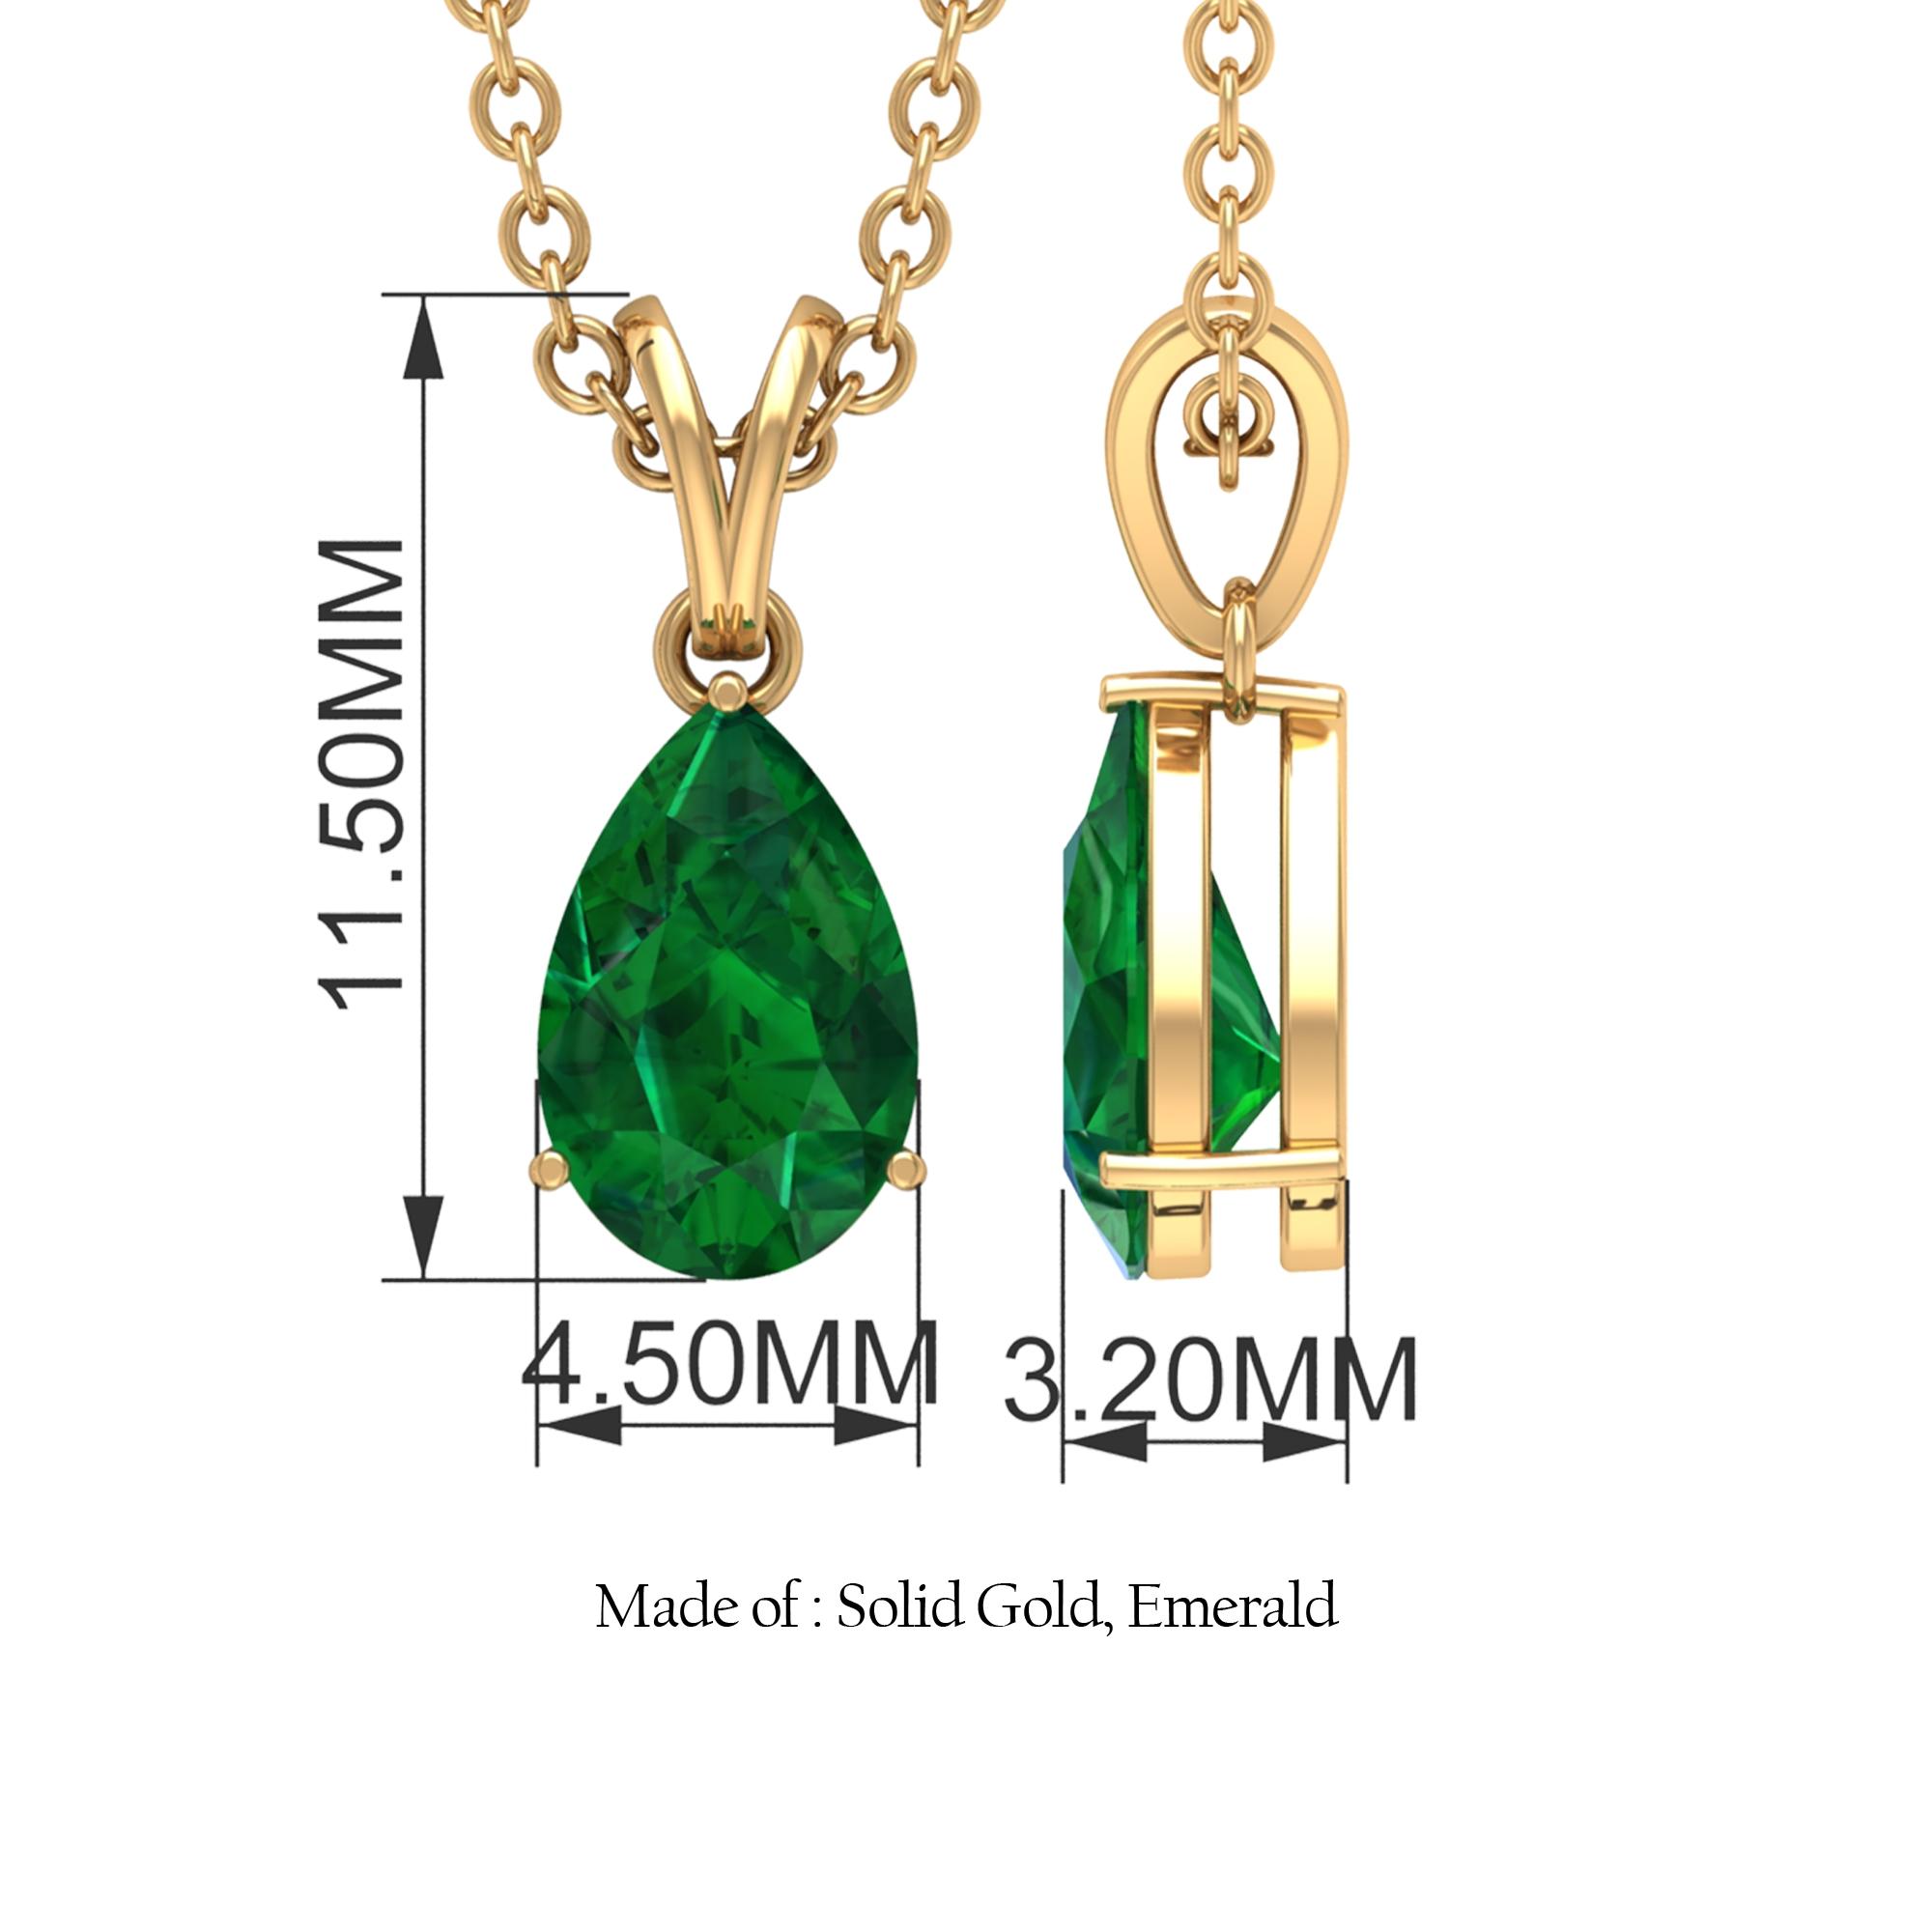 4.5X7 MM Teardrop Emerald Solitaire Pendant in 3 Prong Setting with Rabbit Ear Bail